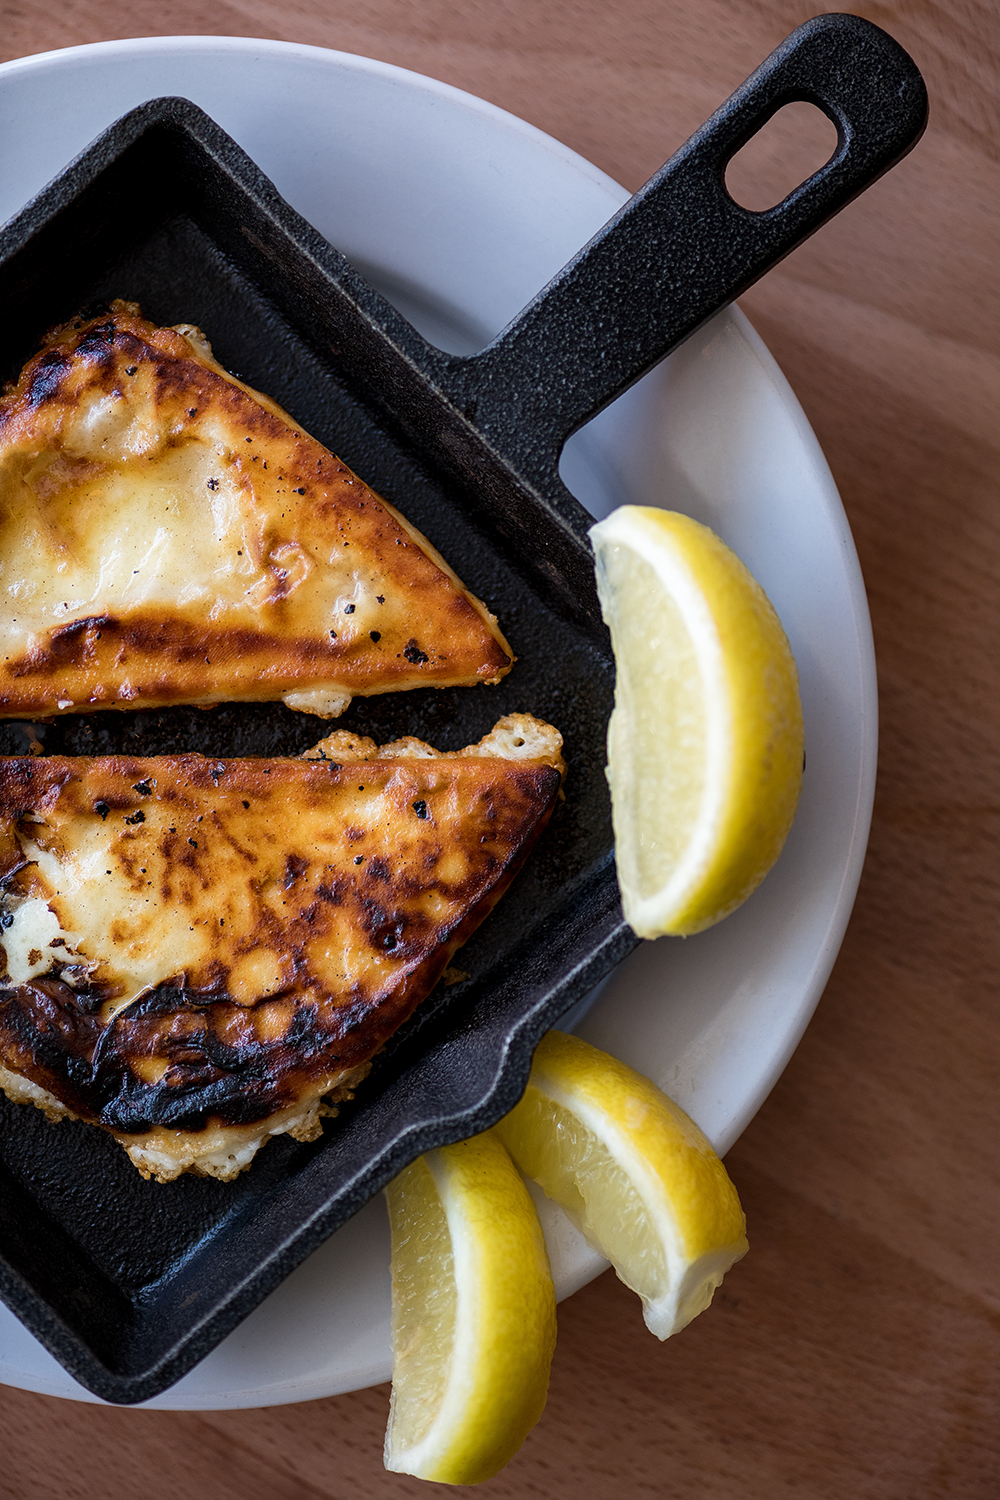 SAGANAKI - shot for The Greek BellySpringfield, MO